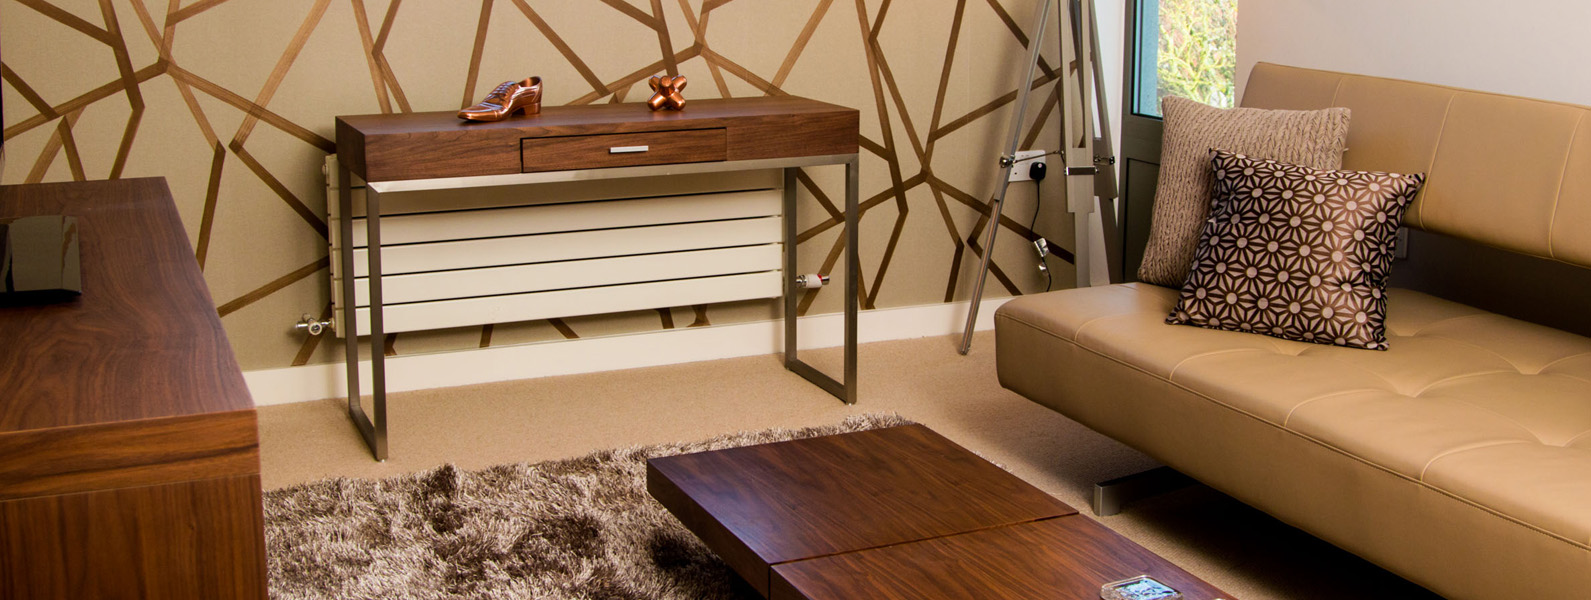 Guest bedroom/study room interior design and styling details by Moji Salehi at Moji Interiors in Hove.